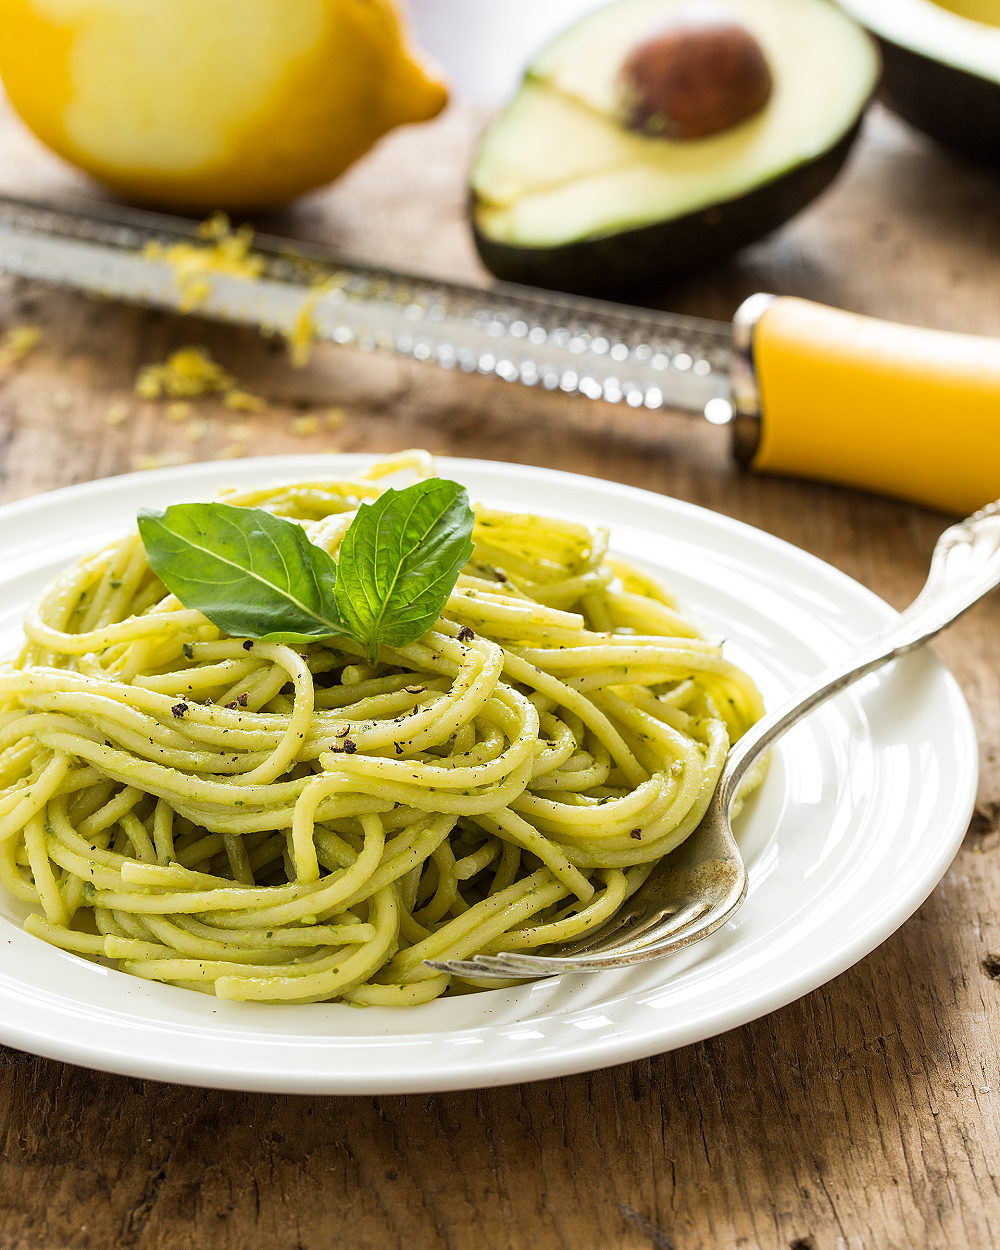 Our Top 10 Pasta Recipes